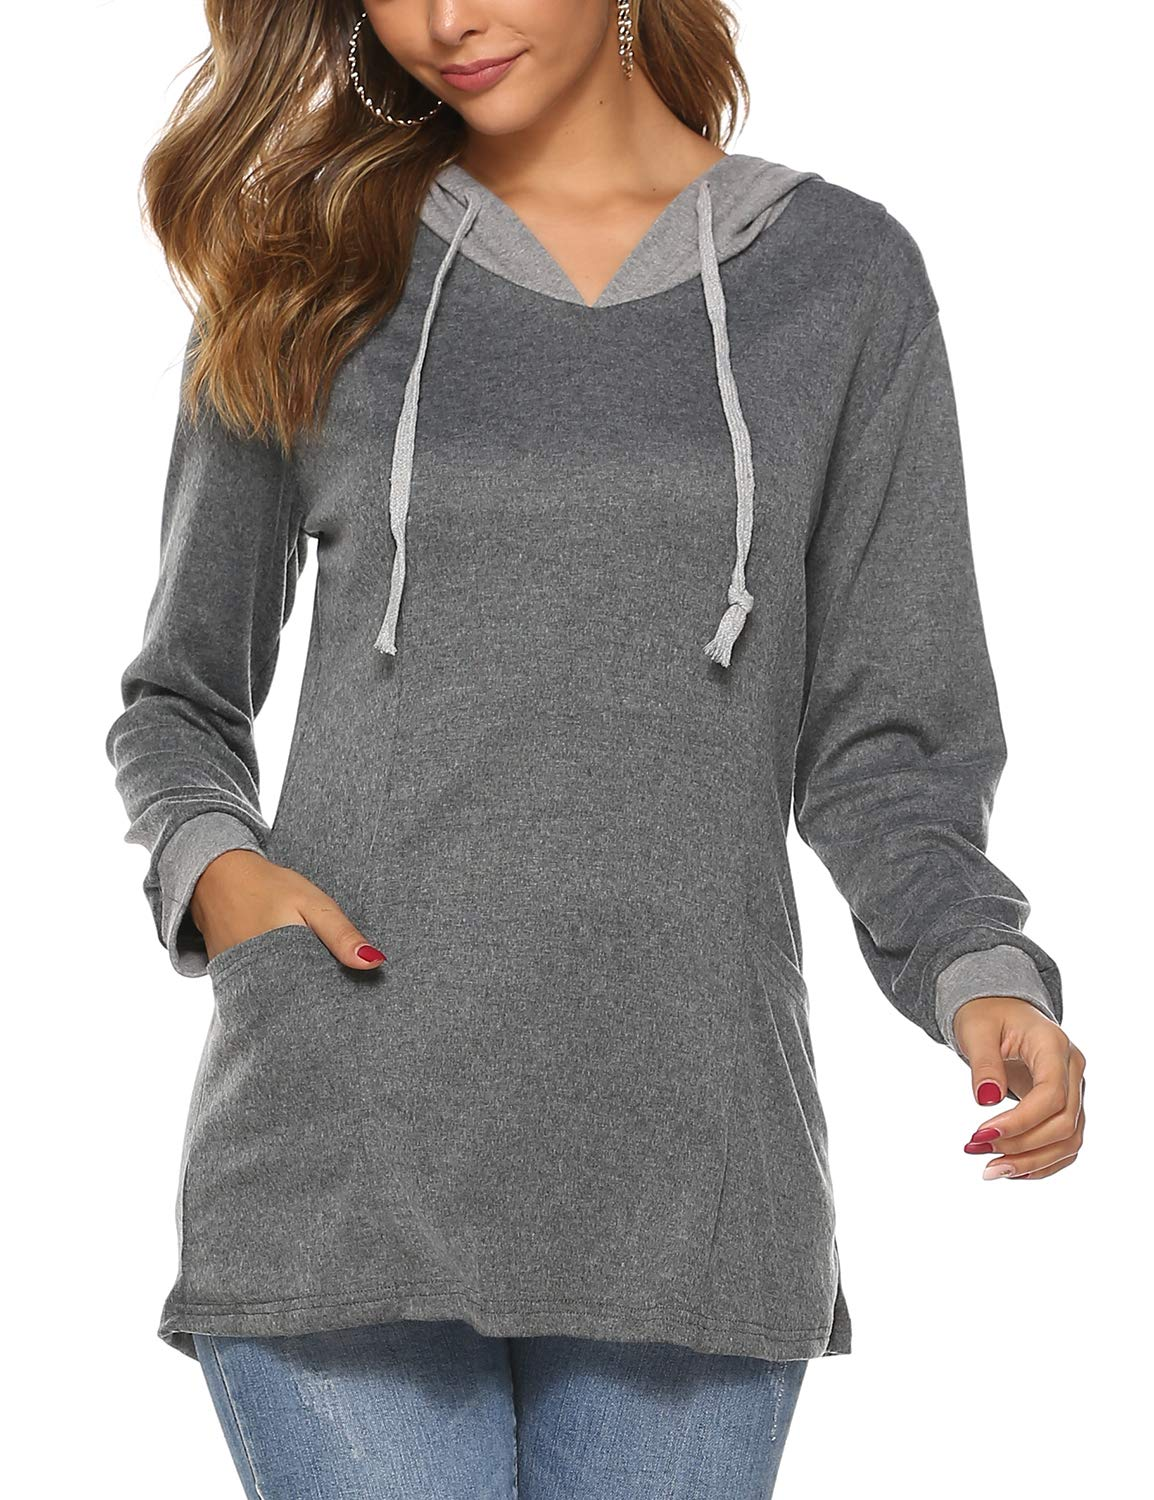 Loose Fitting Long Sleeve Fall Winter Hooded Sweatshirt for Women Color Block Drawstring Tunic Blouse Tops(Grey,XXL)